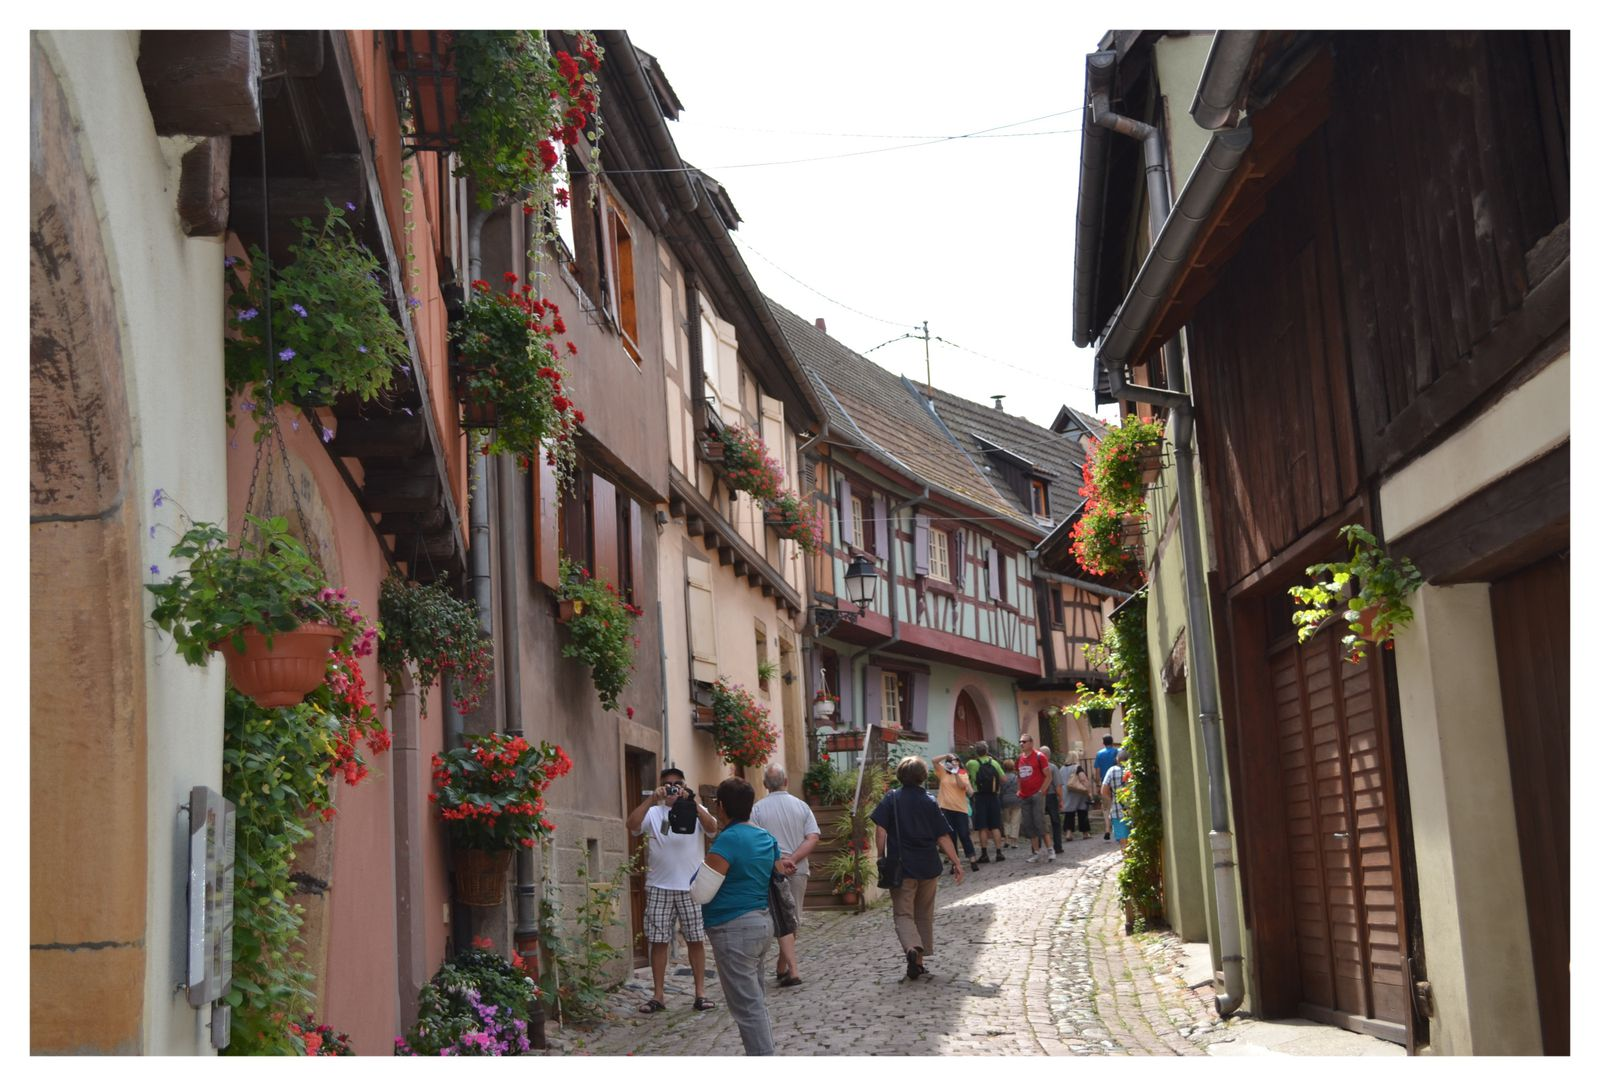 EGUISHEIM LE PLUS BEAU VILLAGE DE FRANCE 2013